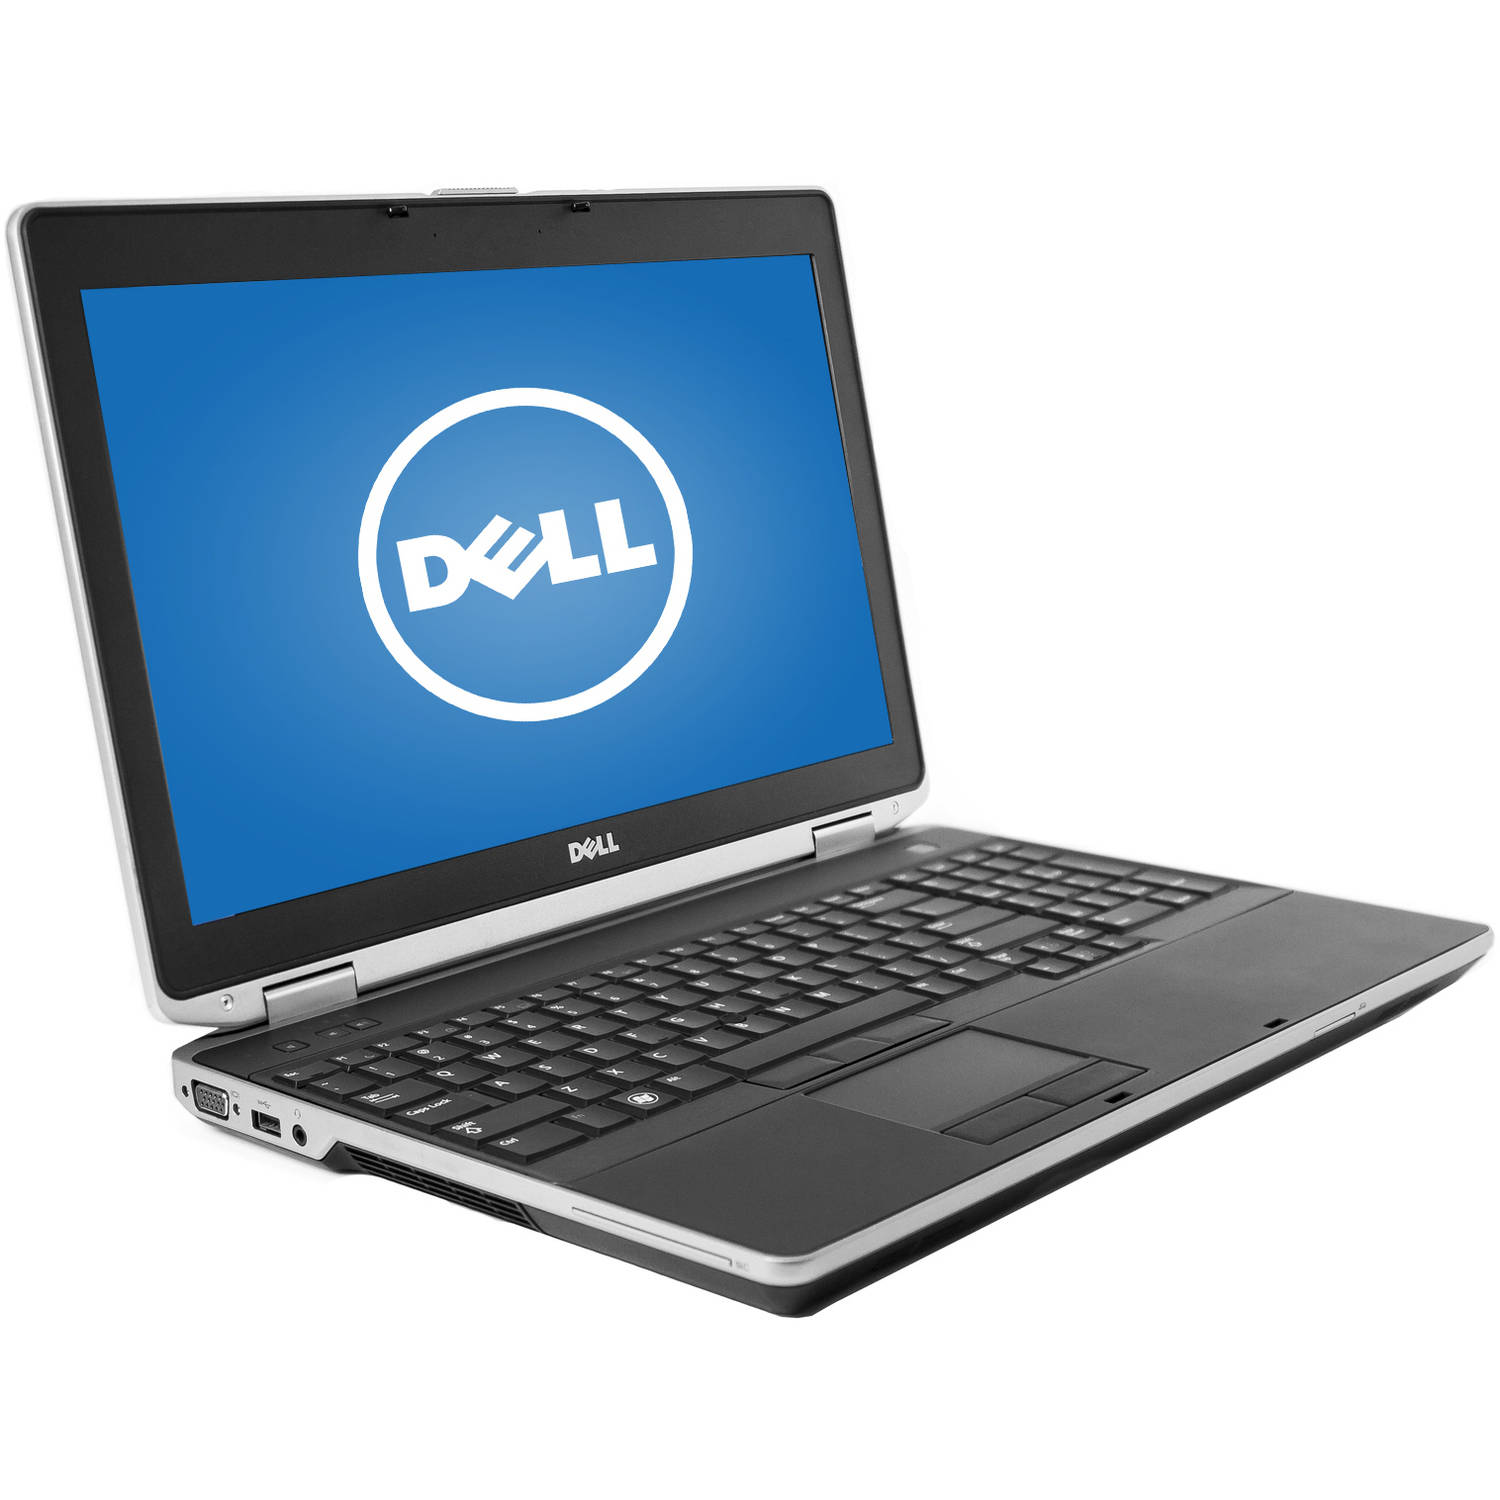 Refurbished Dell 15.6 Latitude E6530 Laptop PC with Intel Core i5 - 3210M Processor, 8GB Memory, 256GB Solid State Drive and Windows 10 Pro